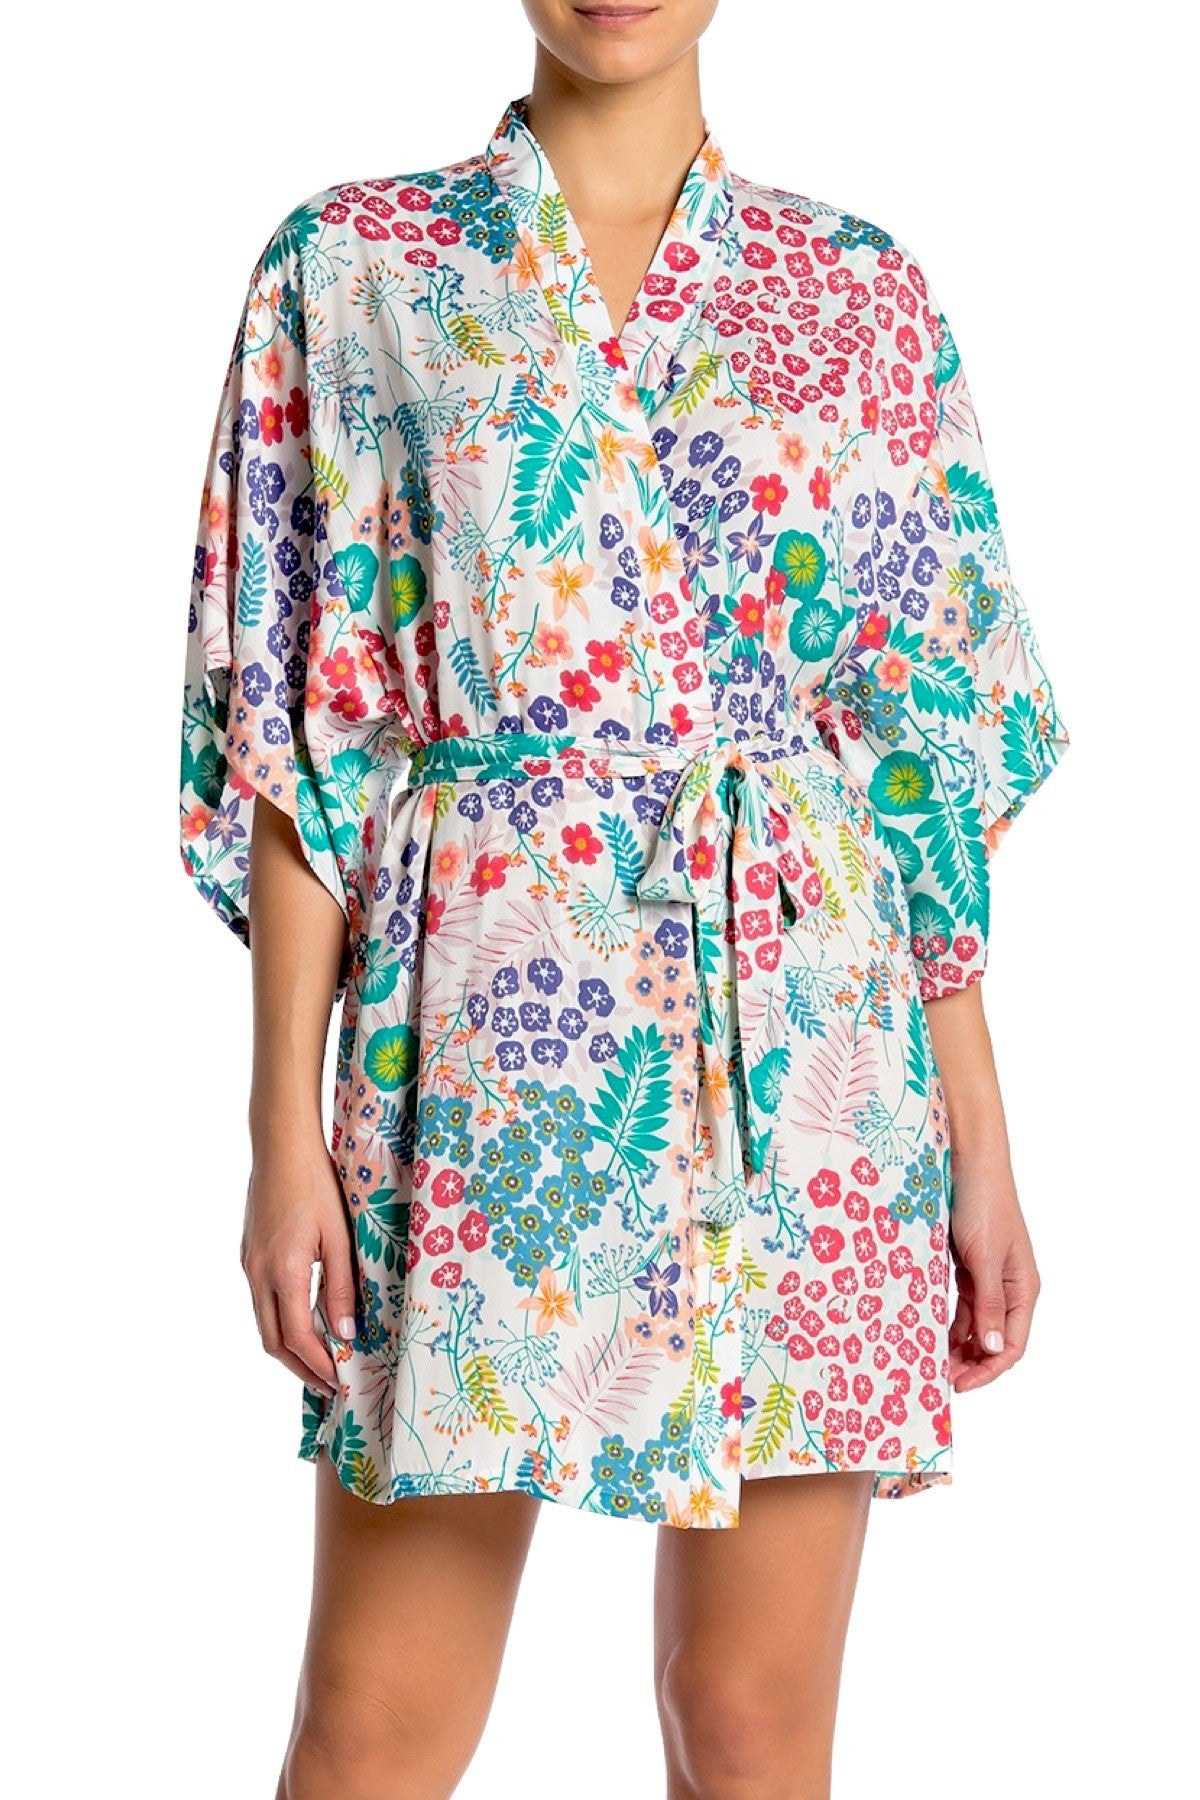 Josie by Natori Lotus Bouquet Kimono Wrap Robe in White/Multi